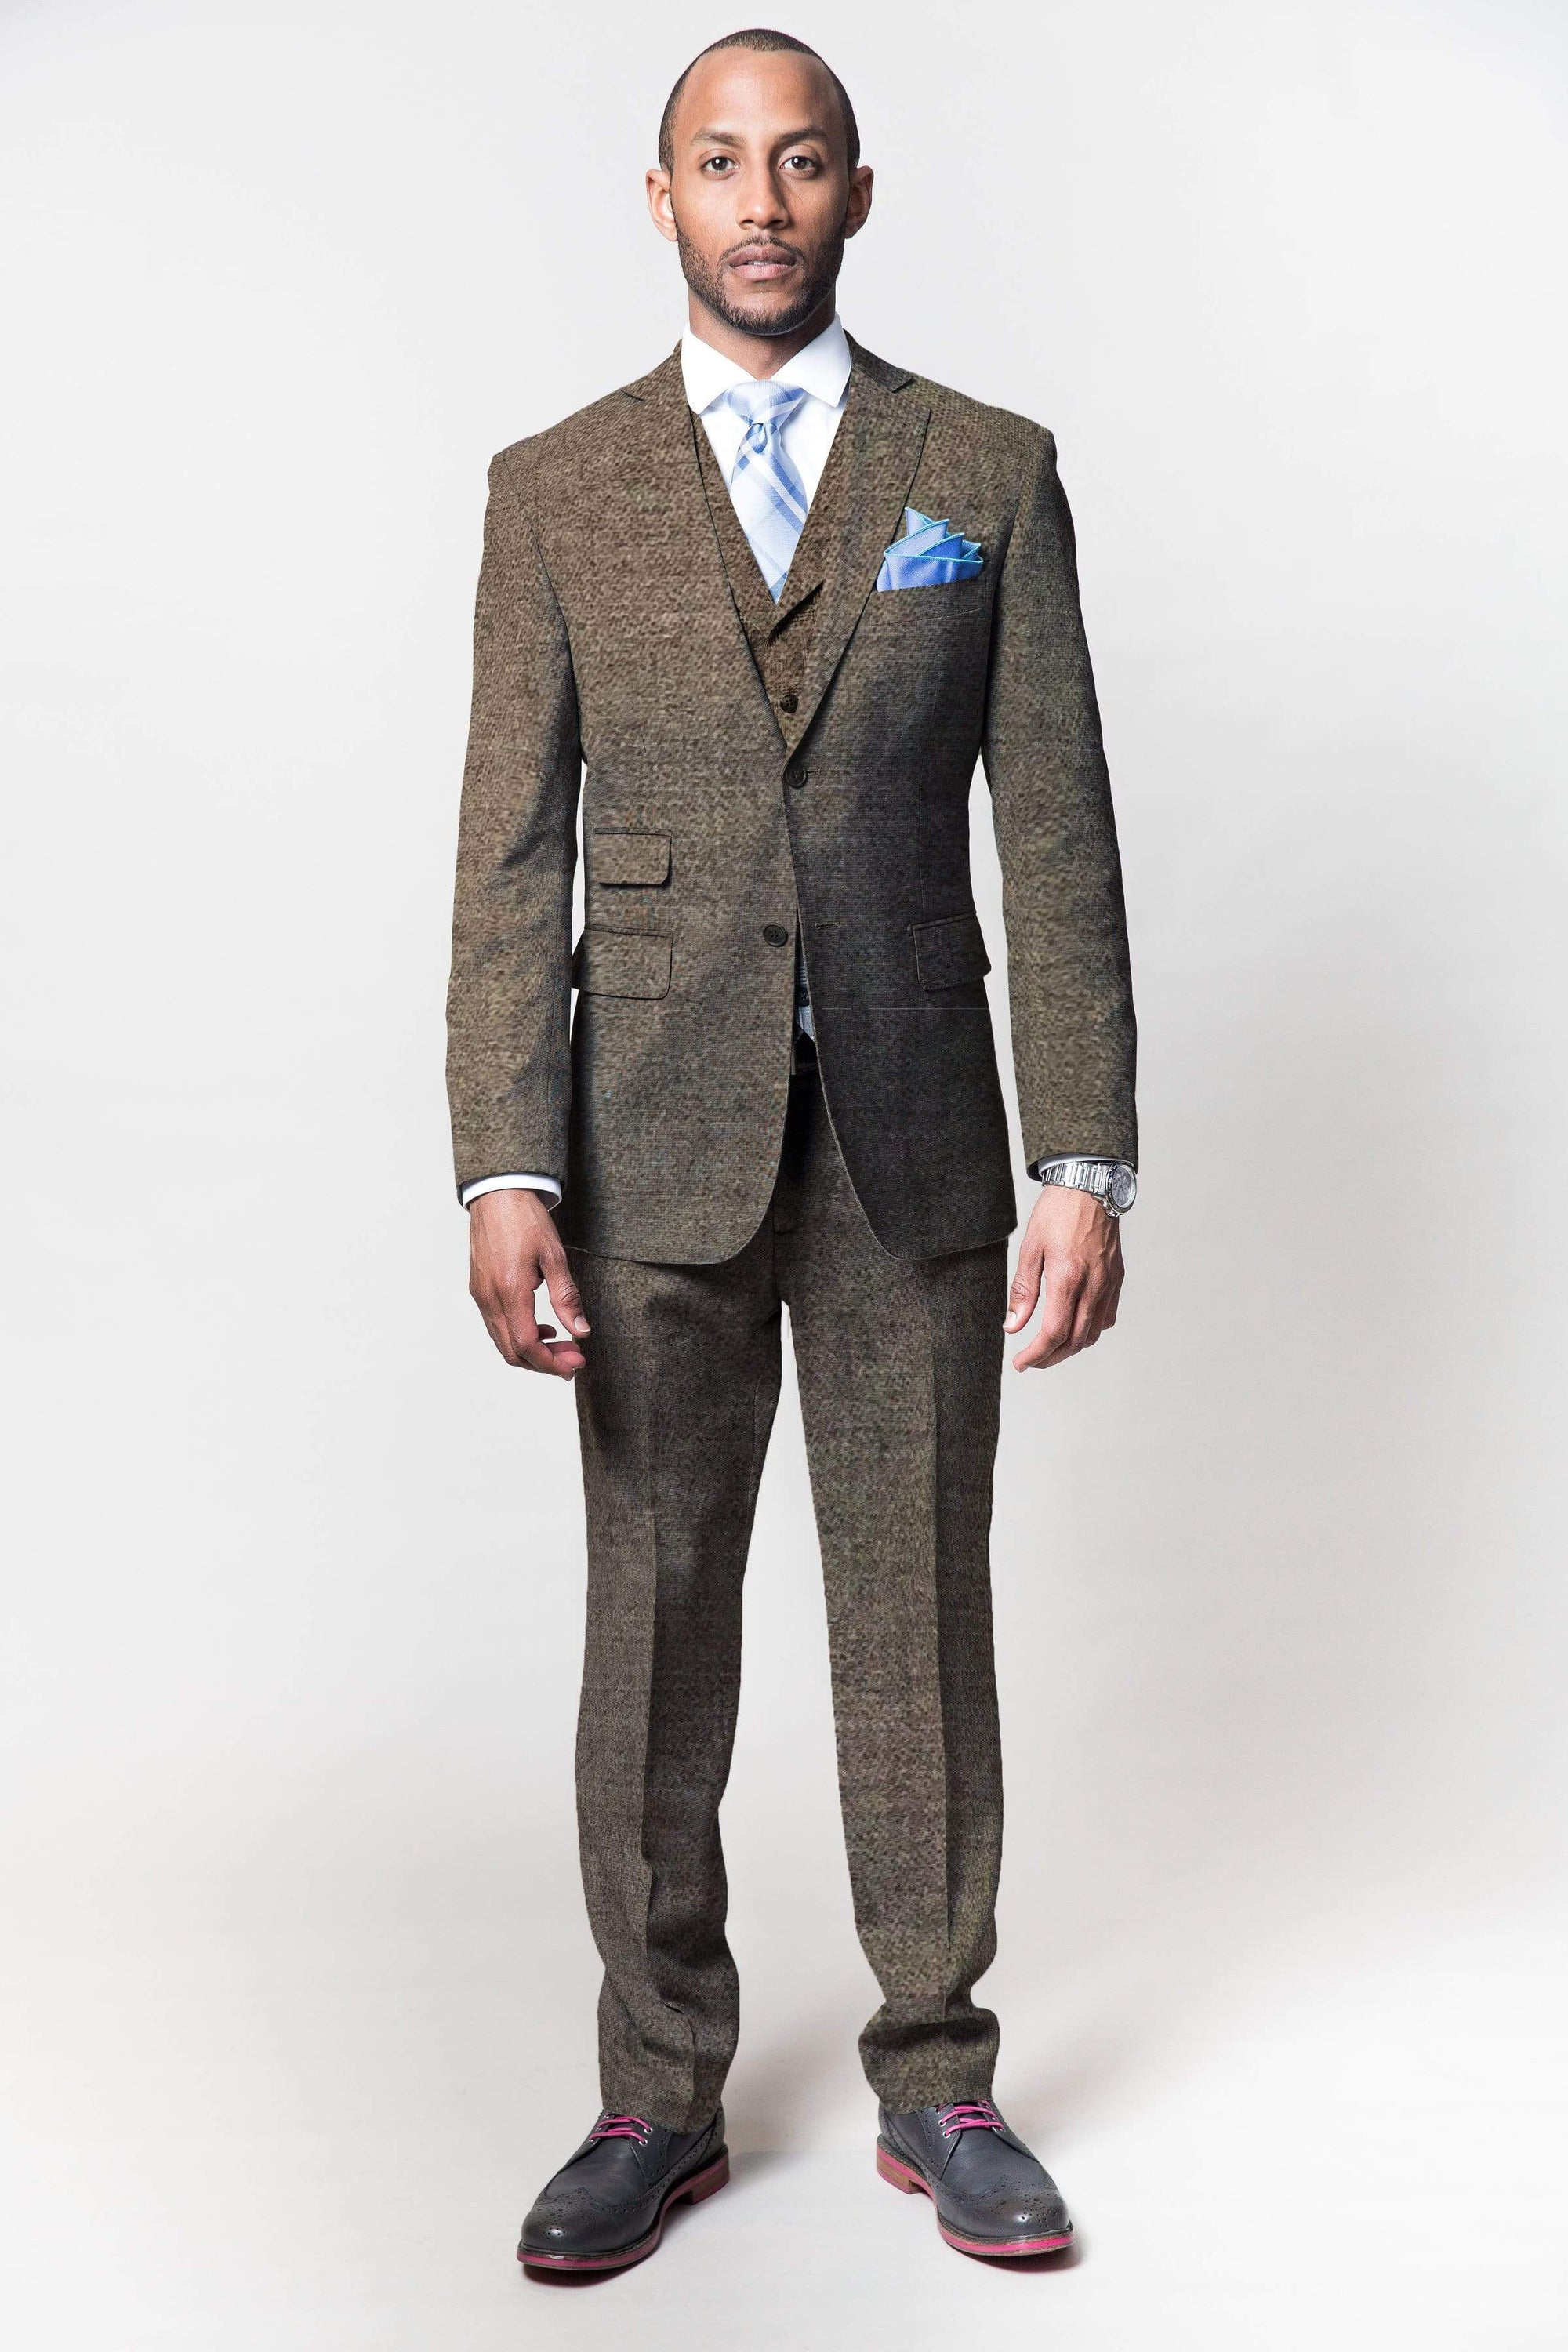 MEN'S 2 PIECE BESPOKE SUIT | LINGO LUXE BROWN FLANNEL-Lingo Luxe Bespoke